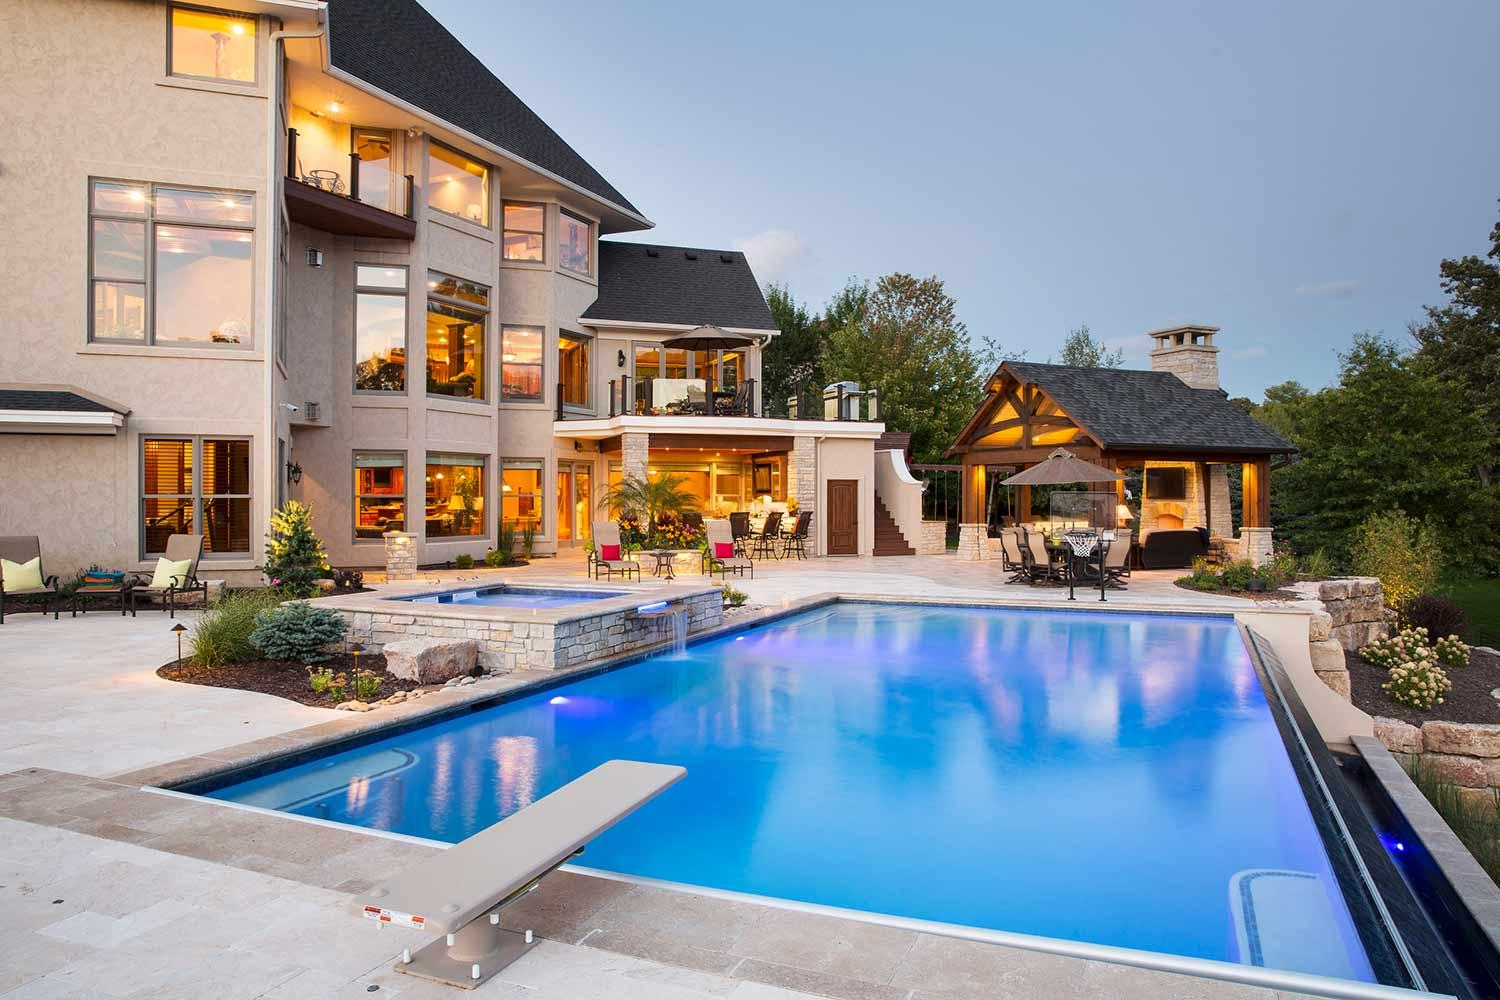 Swimming Pool Landscape Design in Hastings Mn